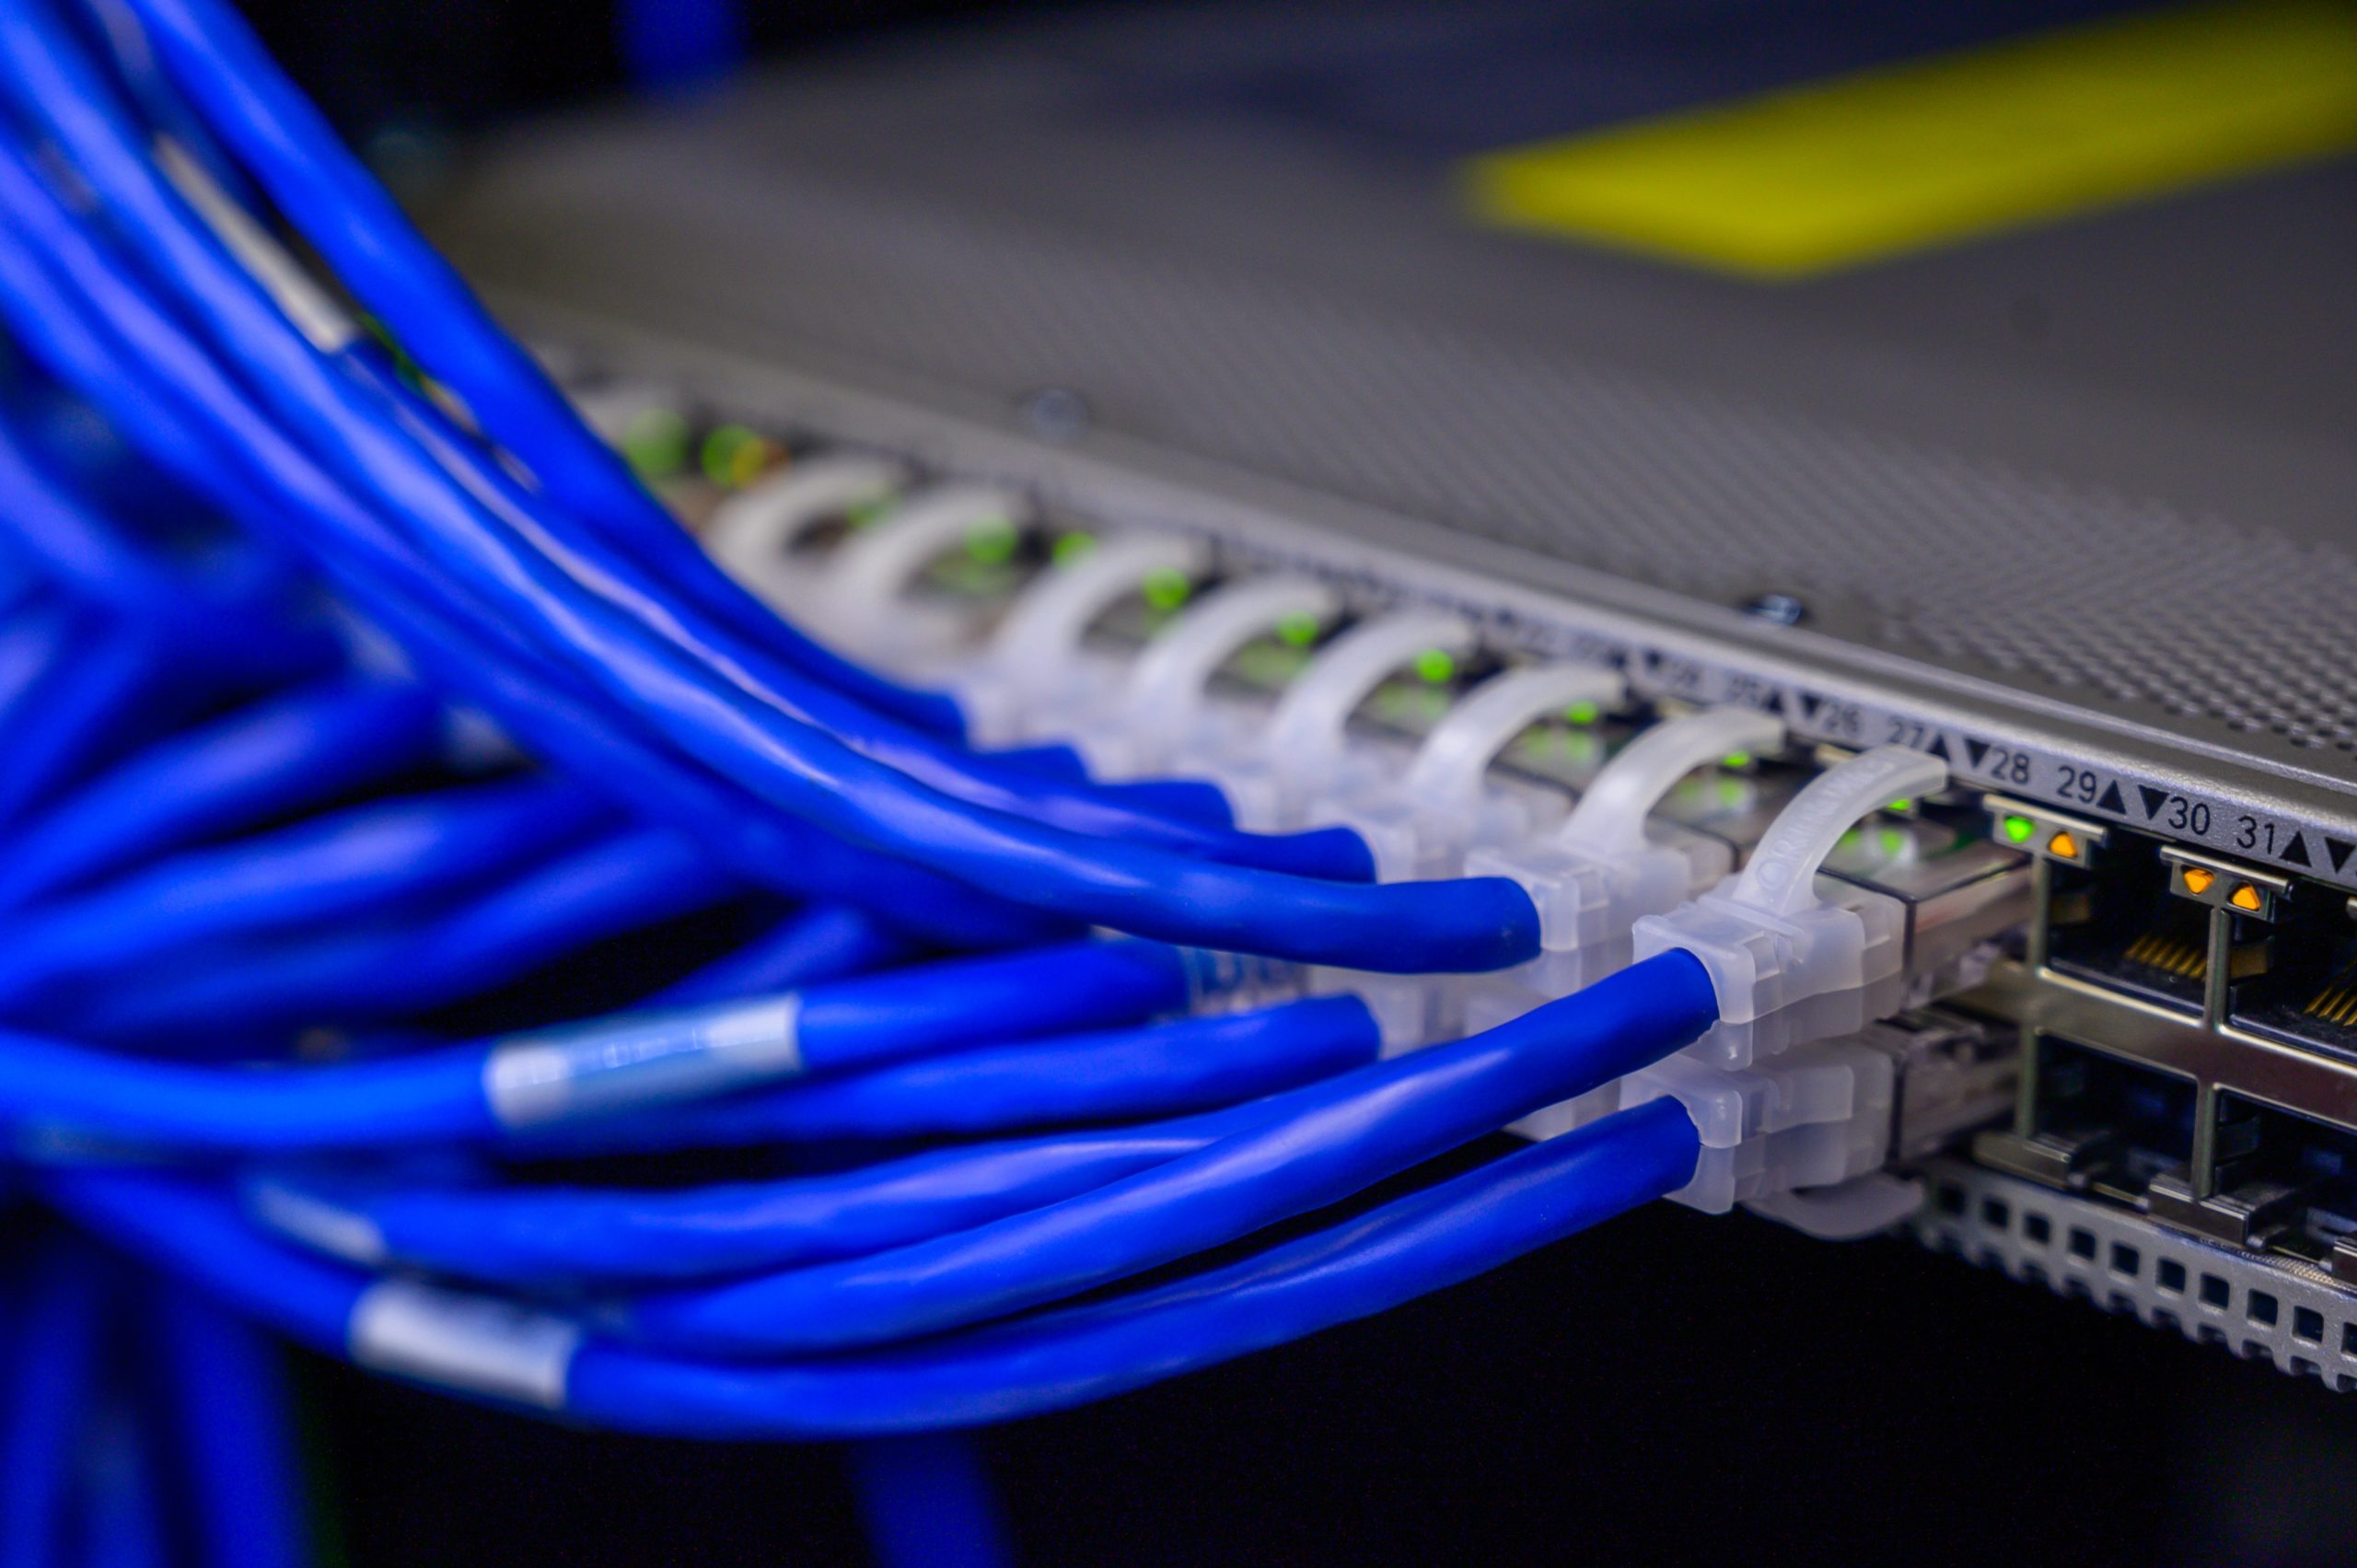 Cabling and Electrical - Yorkshire IT Services - Harrogate, Wetherby, Leeds, York, Otley